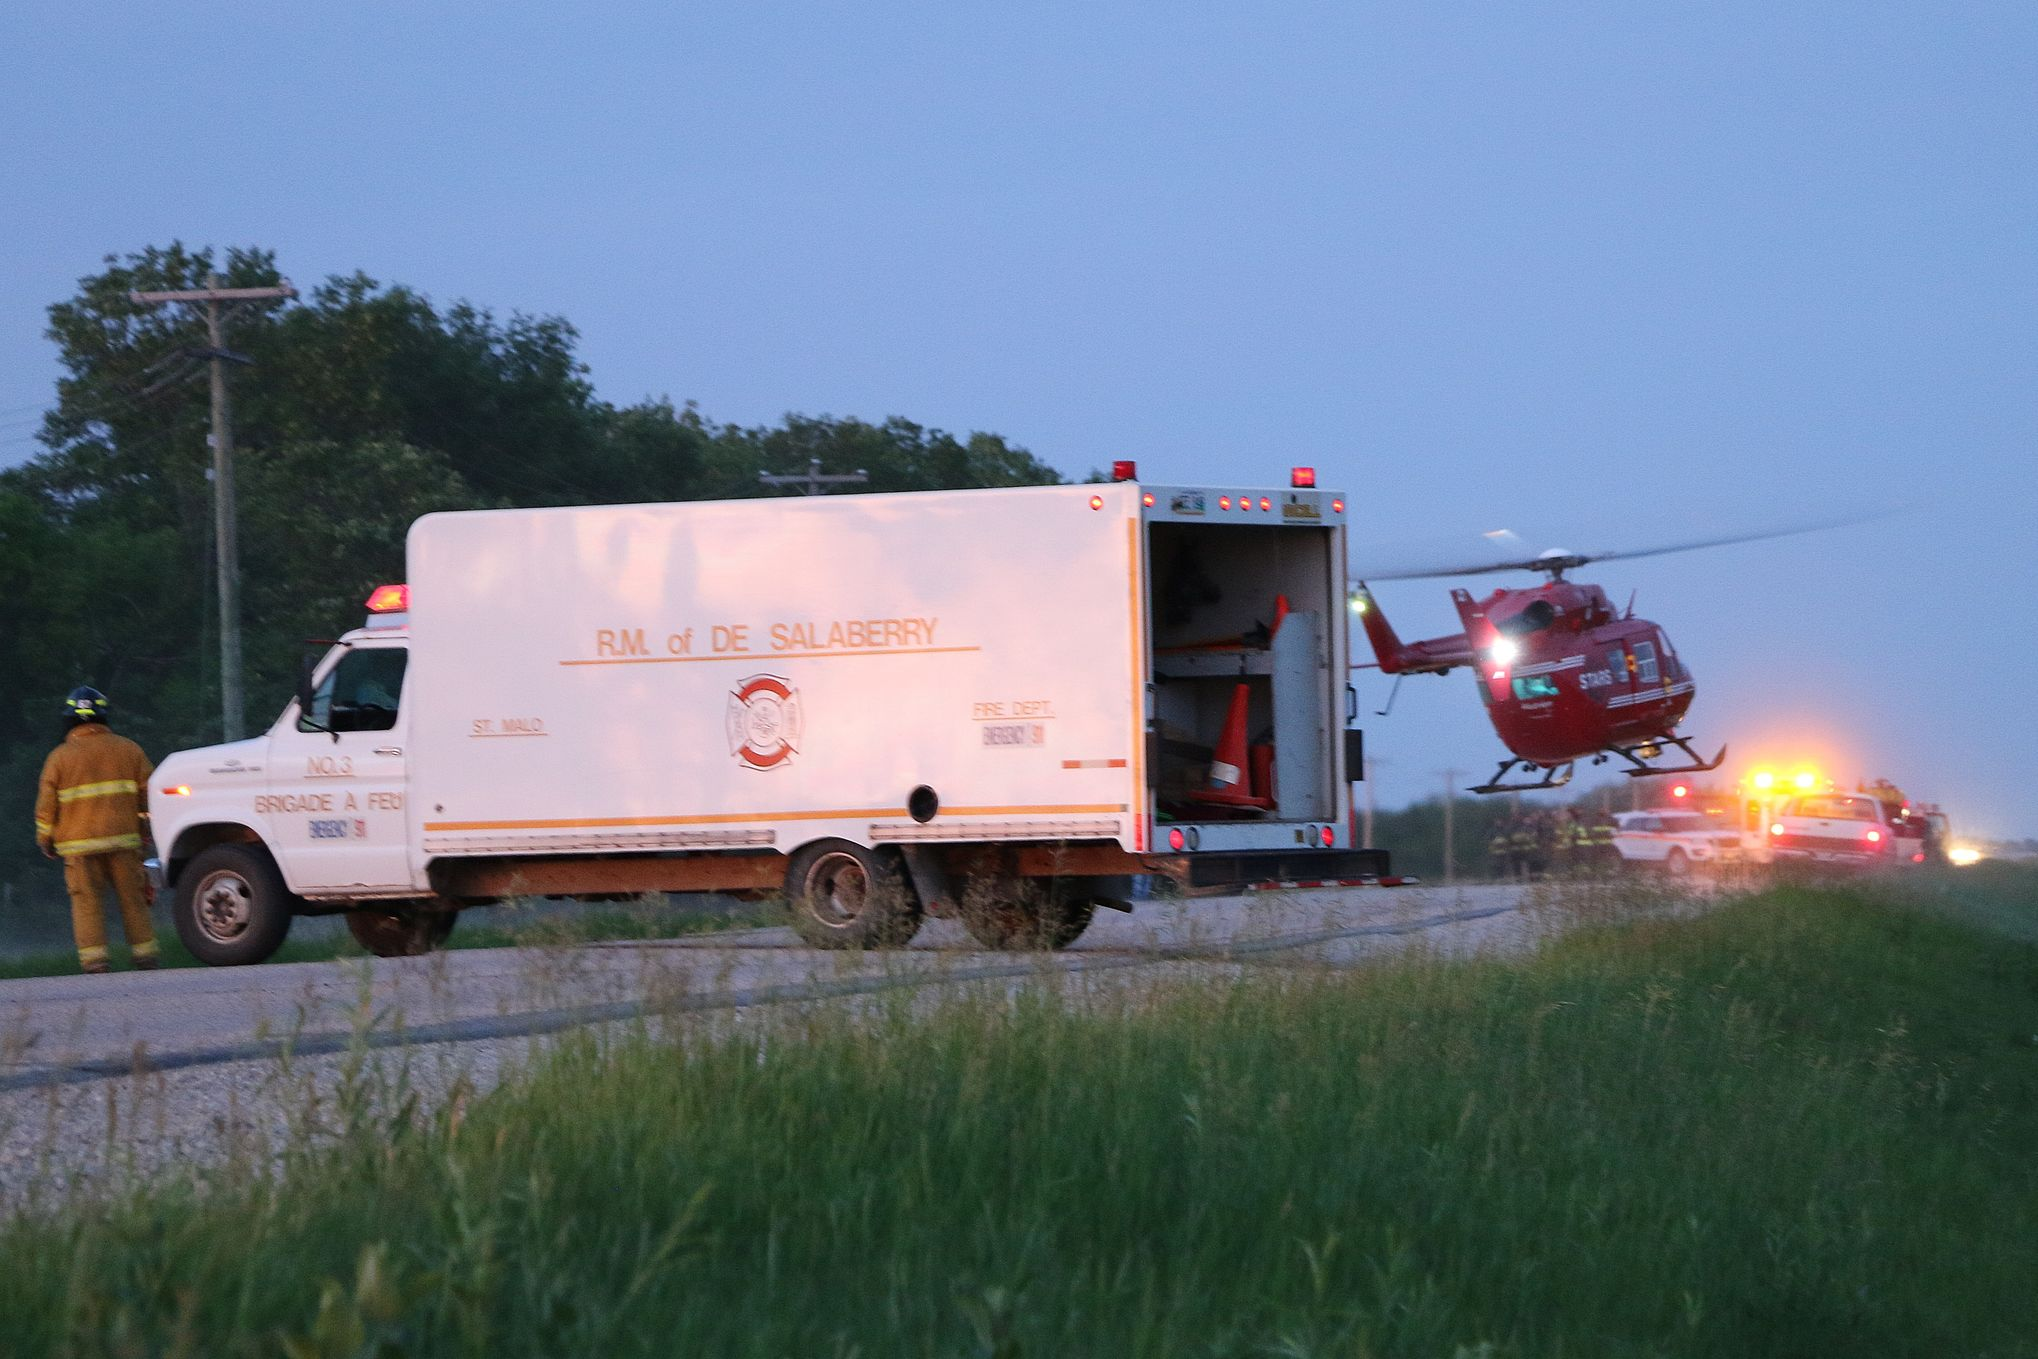 """STARS leaves the scene of a """"horse related injury"""" on Provincial Road 403 around 10 p.m. on Sunday night, transporting a patient in critical condition."""